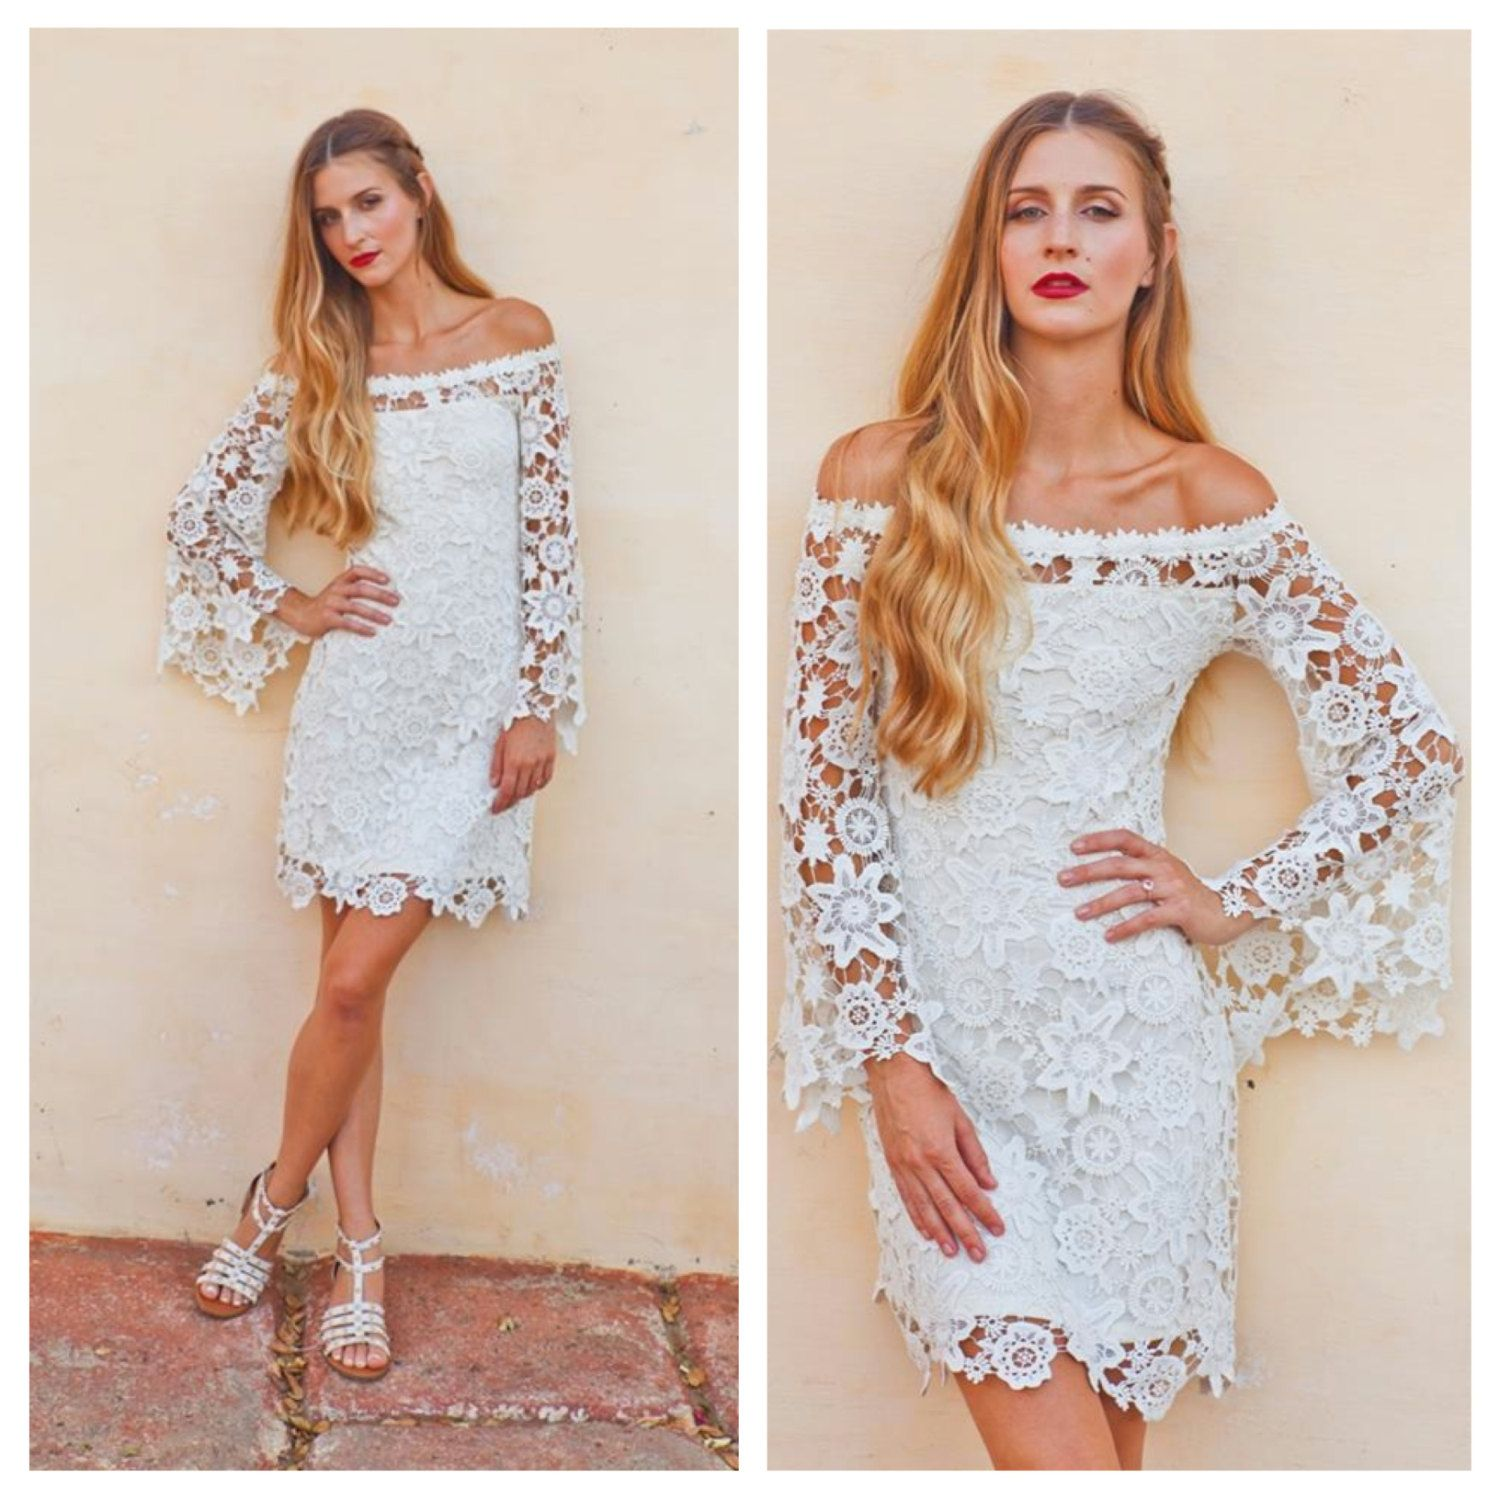 Popular items for crochet lace dress on etsy i love lace